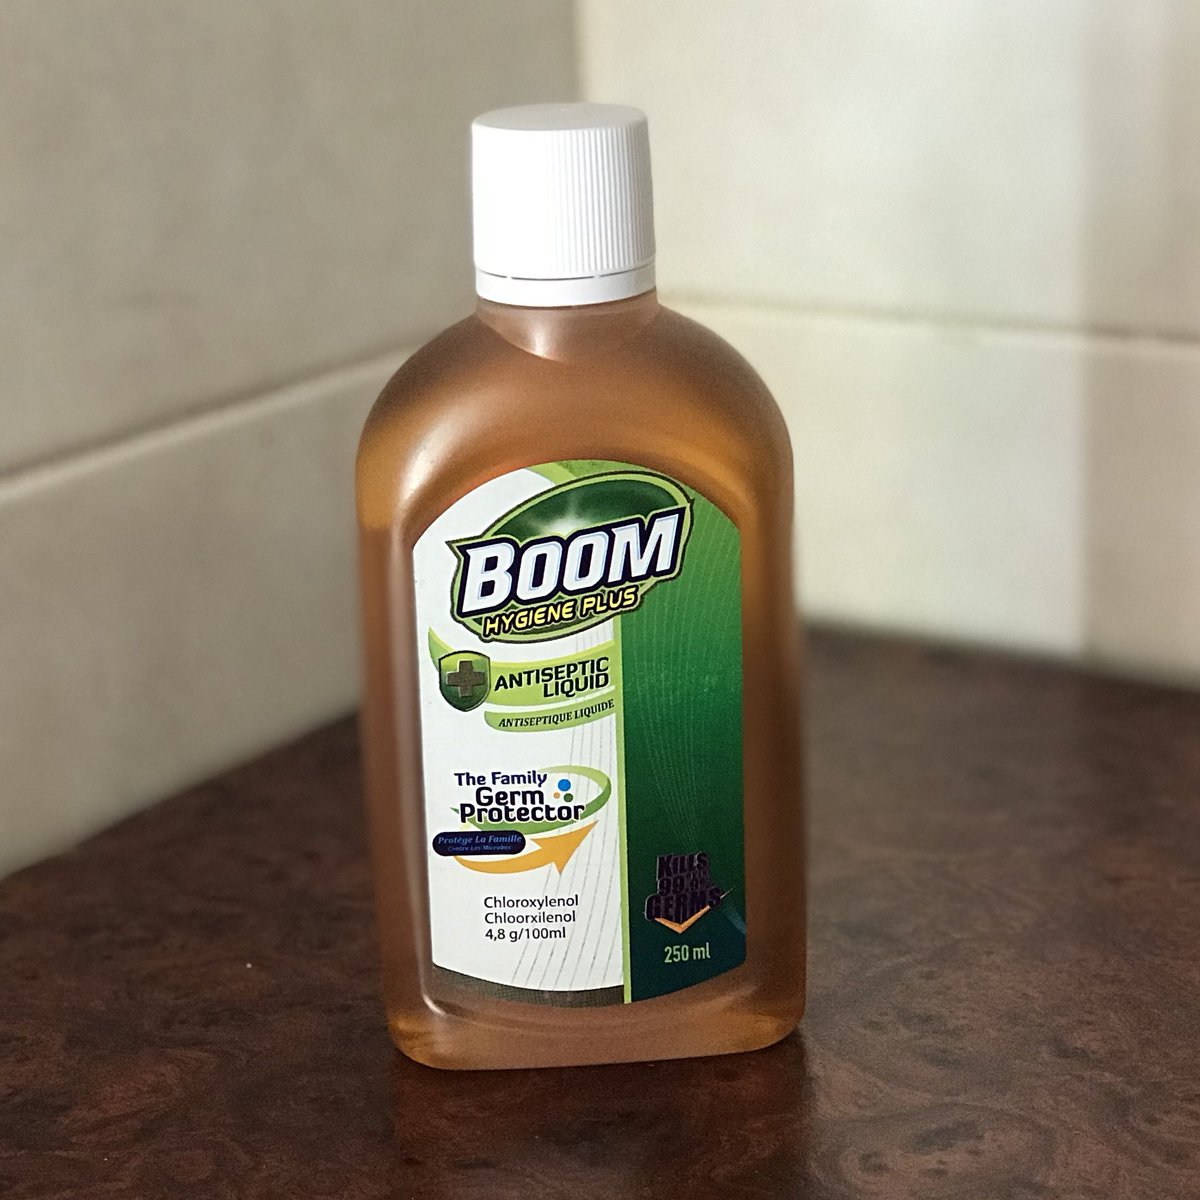 Brian Tembo On Twitter My Local Product Of The Week Same Dettol Antiseptic Liquid 100 Ml Chloroxylenol Content As At 48g 100ml But About K10 Cheaper Well Done Trade Kings Https Tco Yuyqhdtbhz